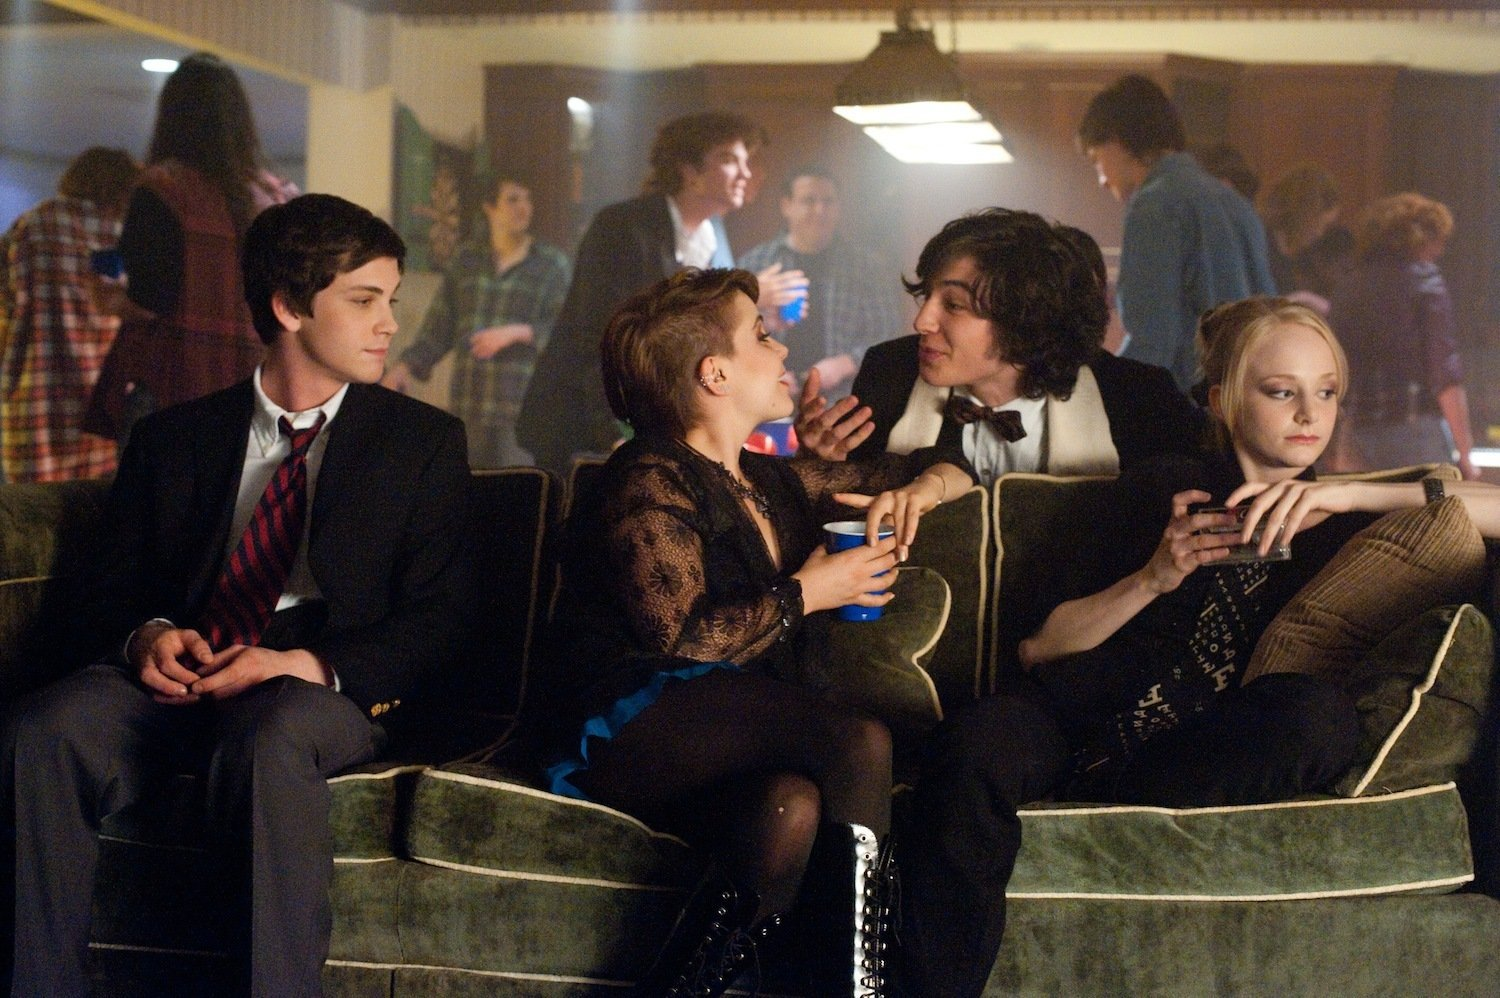 the perks of being a wallflower full movie download with english subtitles